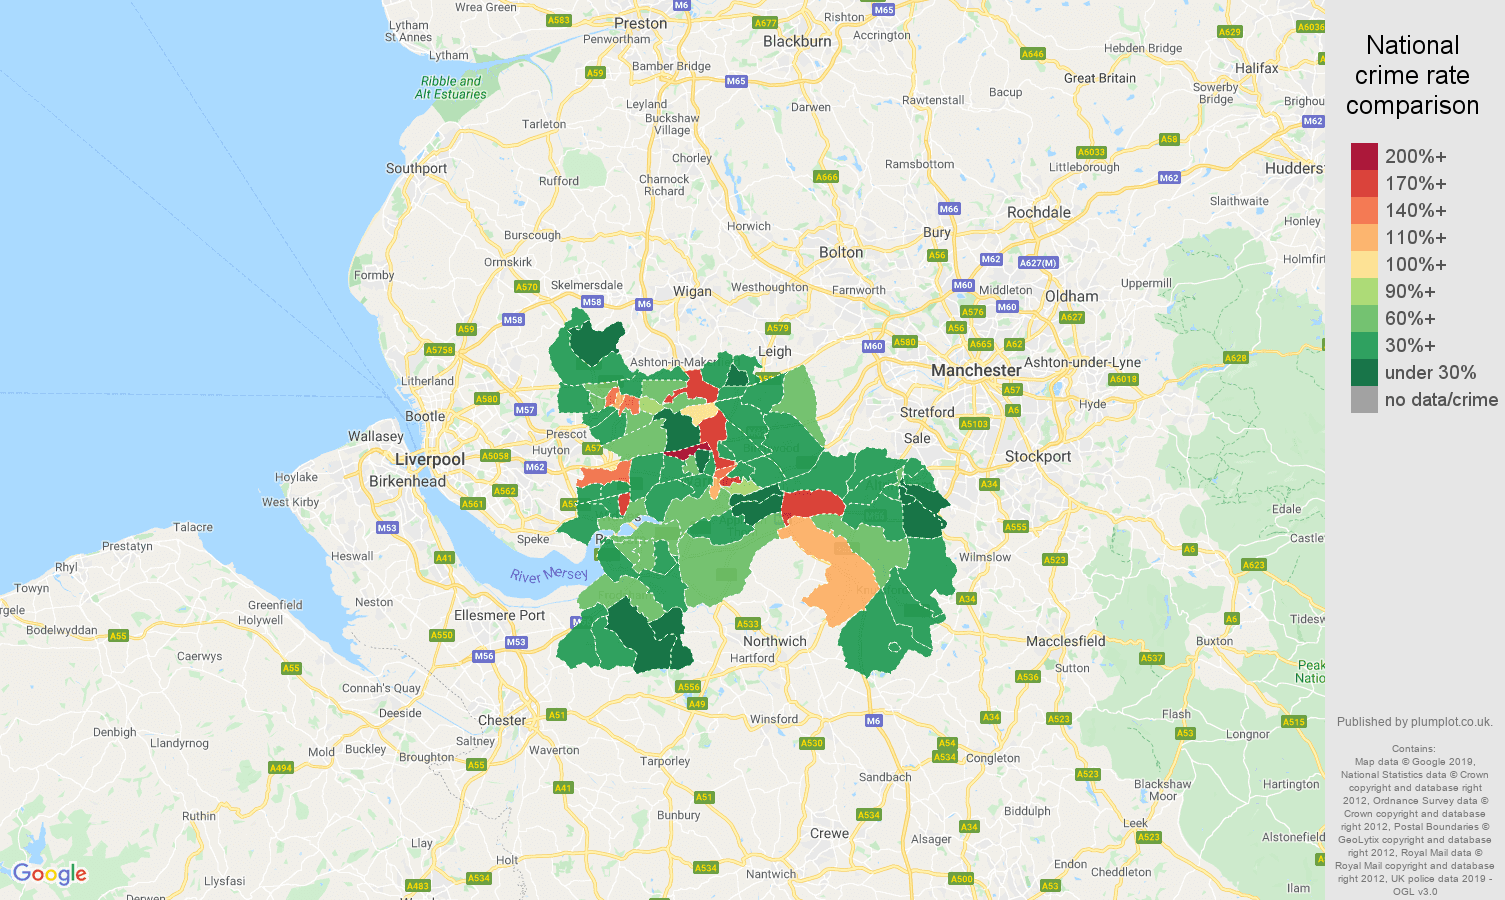 Warrington other theft crime rate comparison map